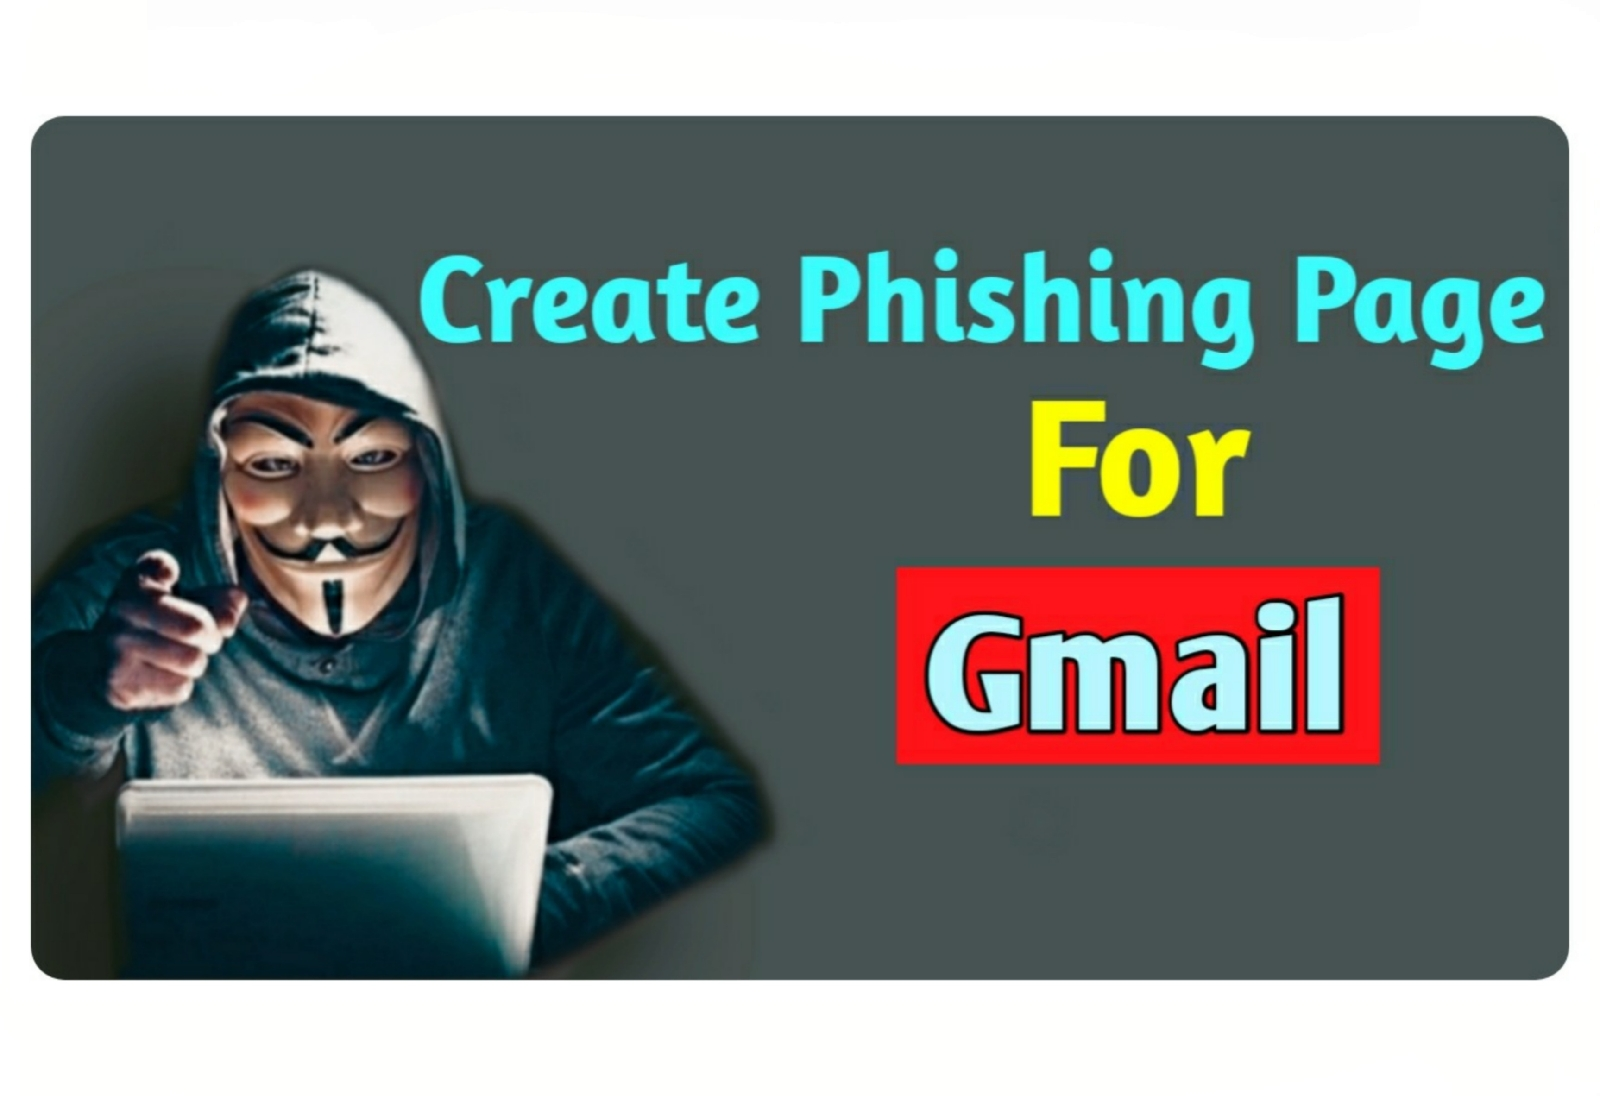 how to create a phishing page for gmail